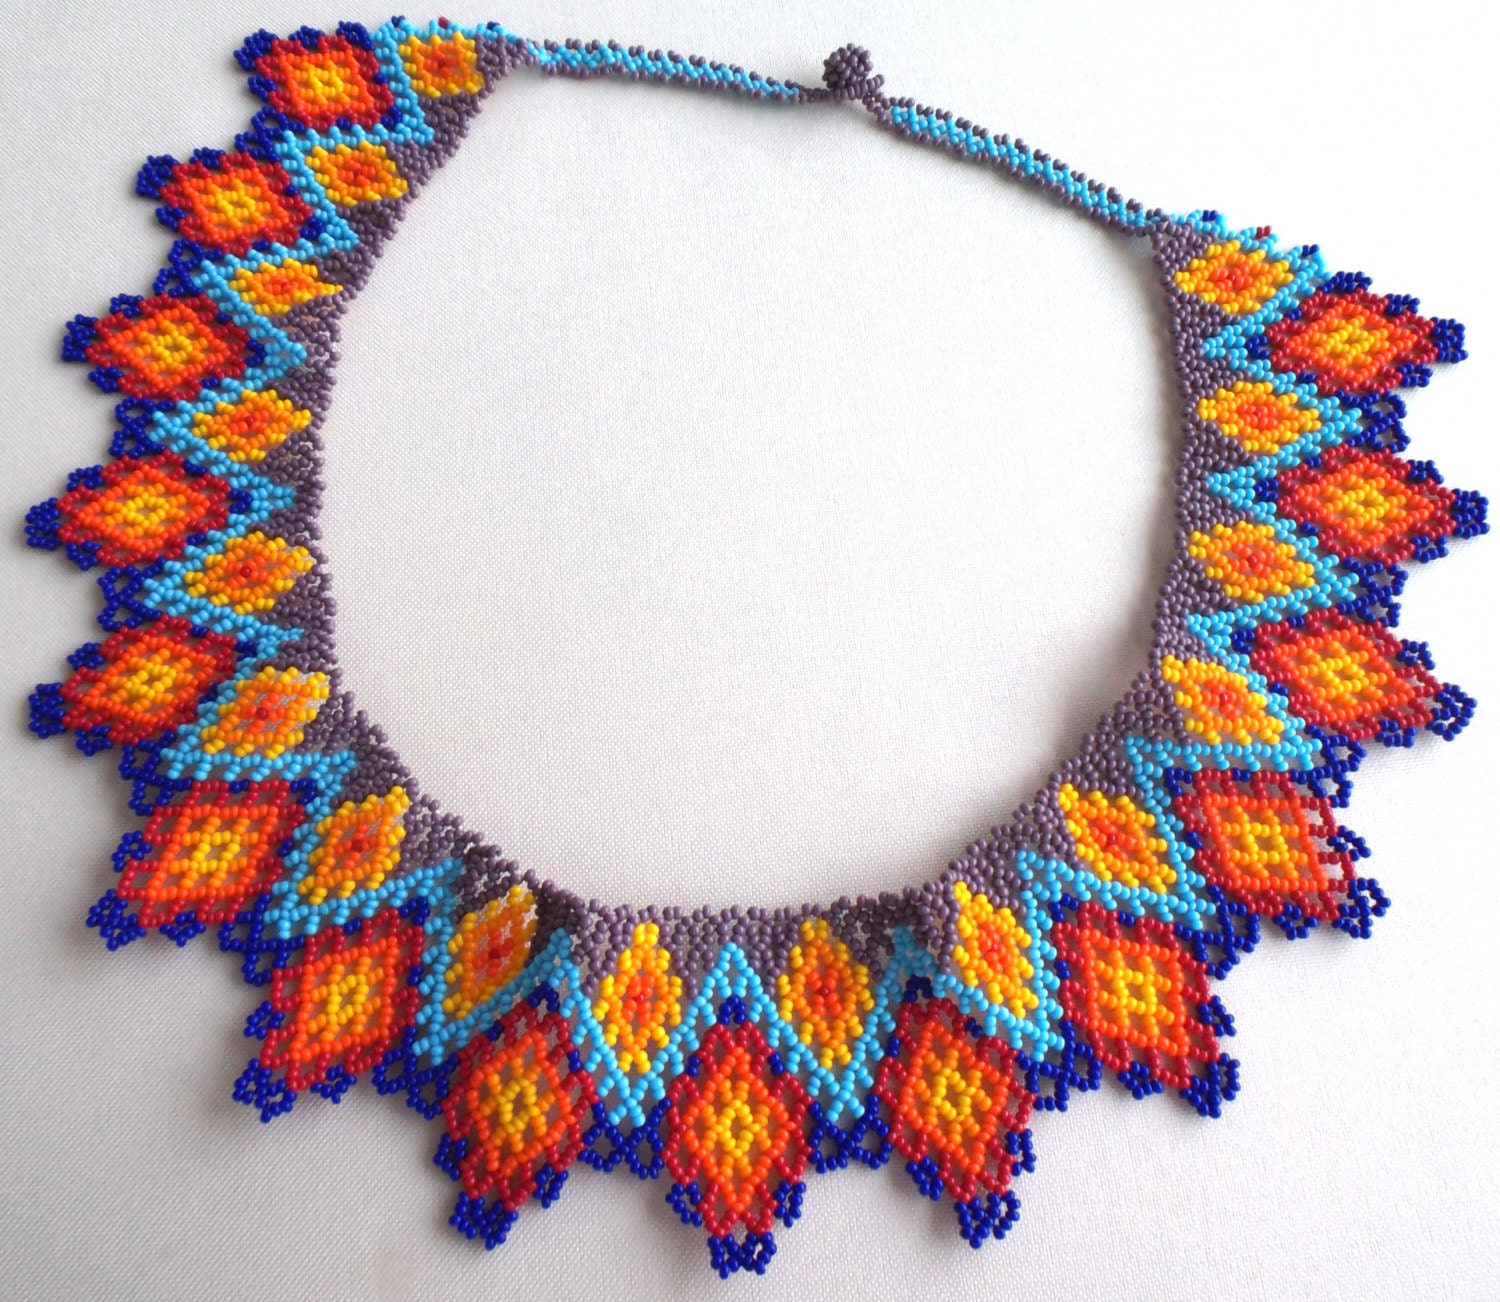 Beads Necklace Beads: Mexican Huichol Beaded Necklace / Choker